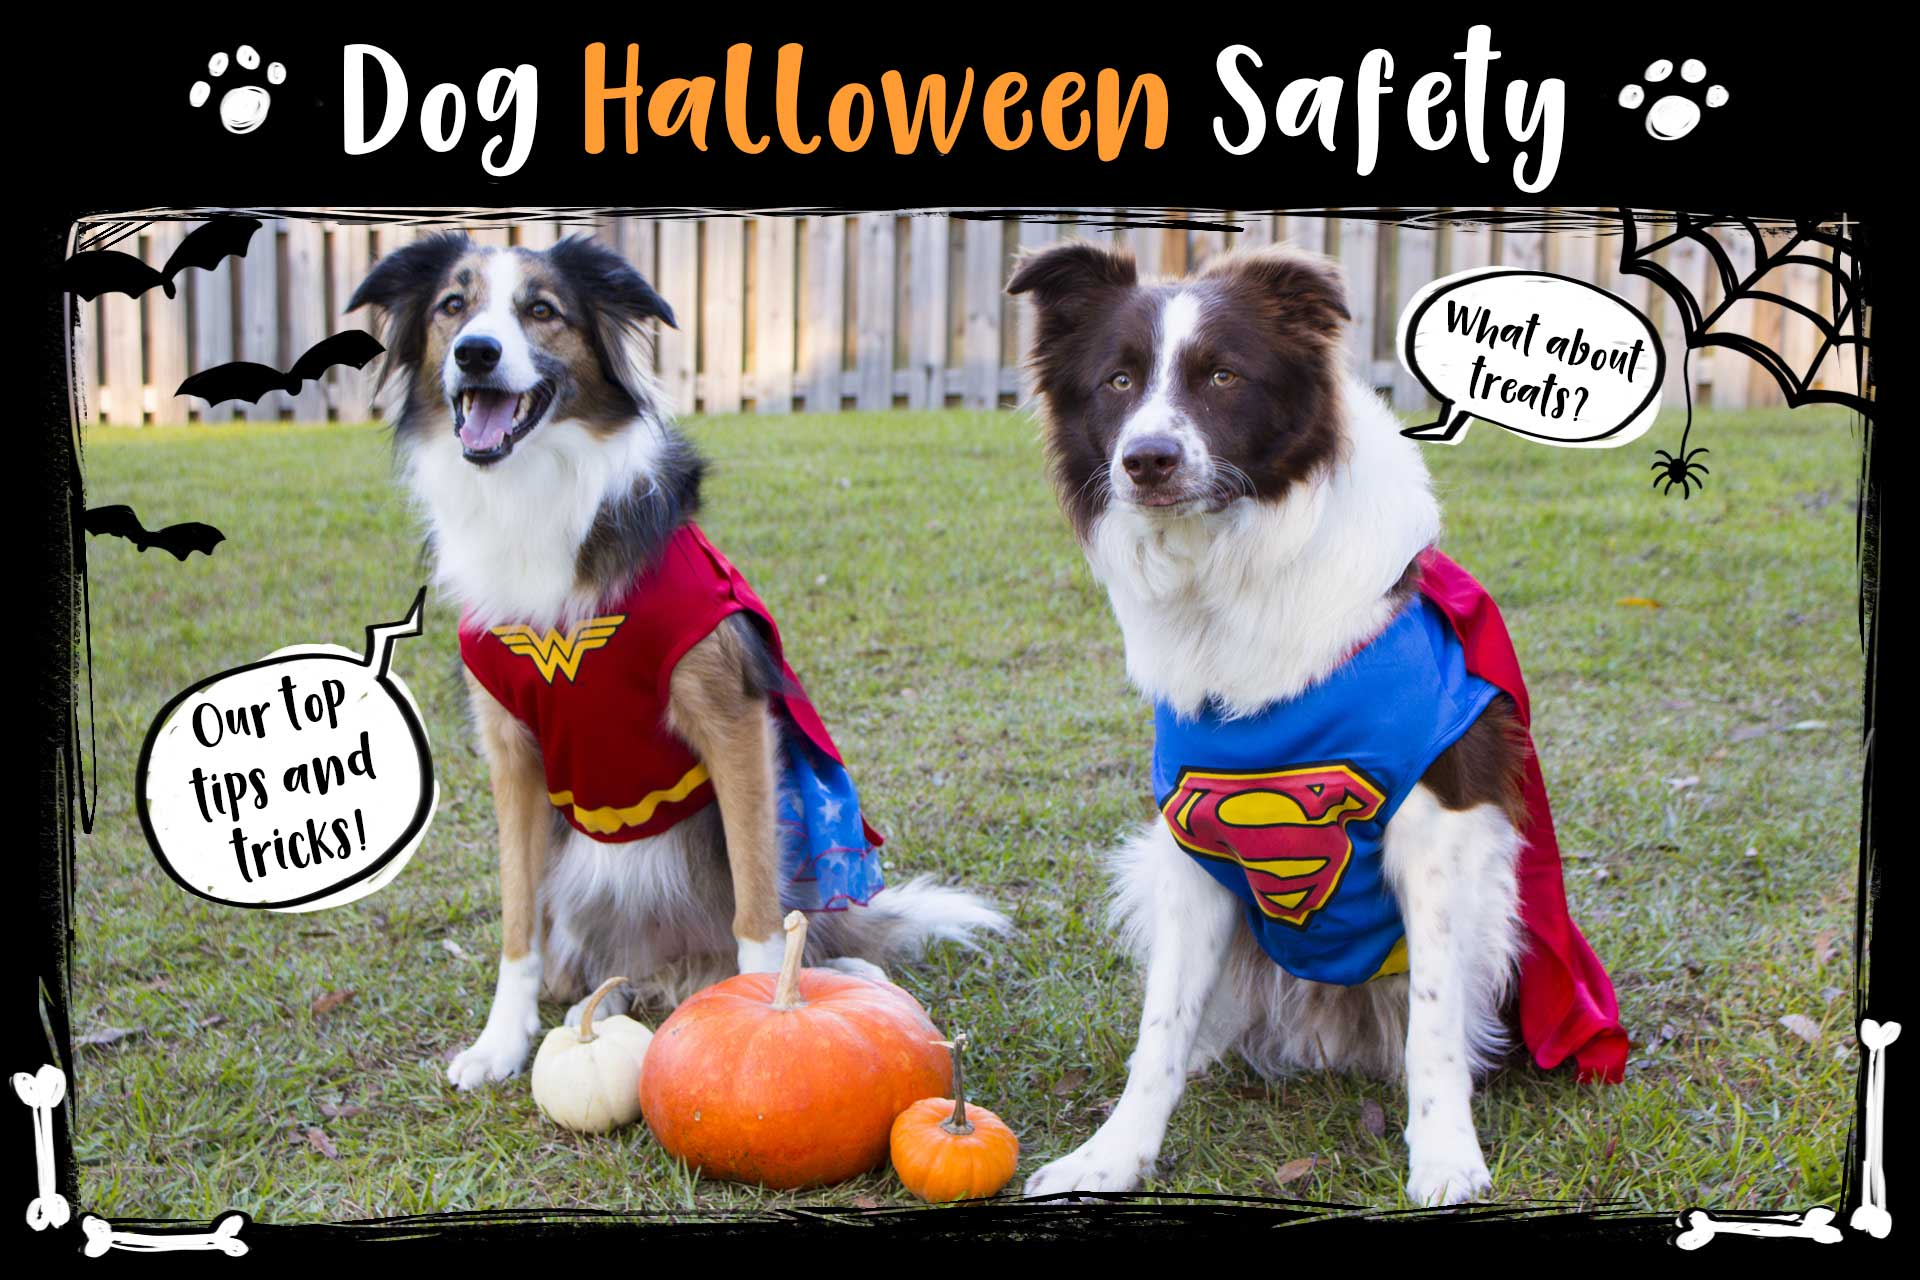 Dog Halloween Safety